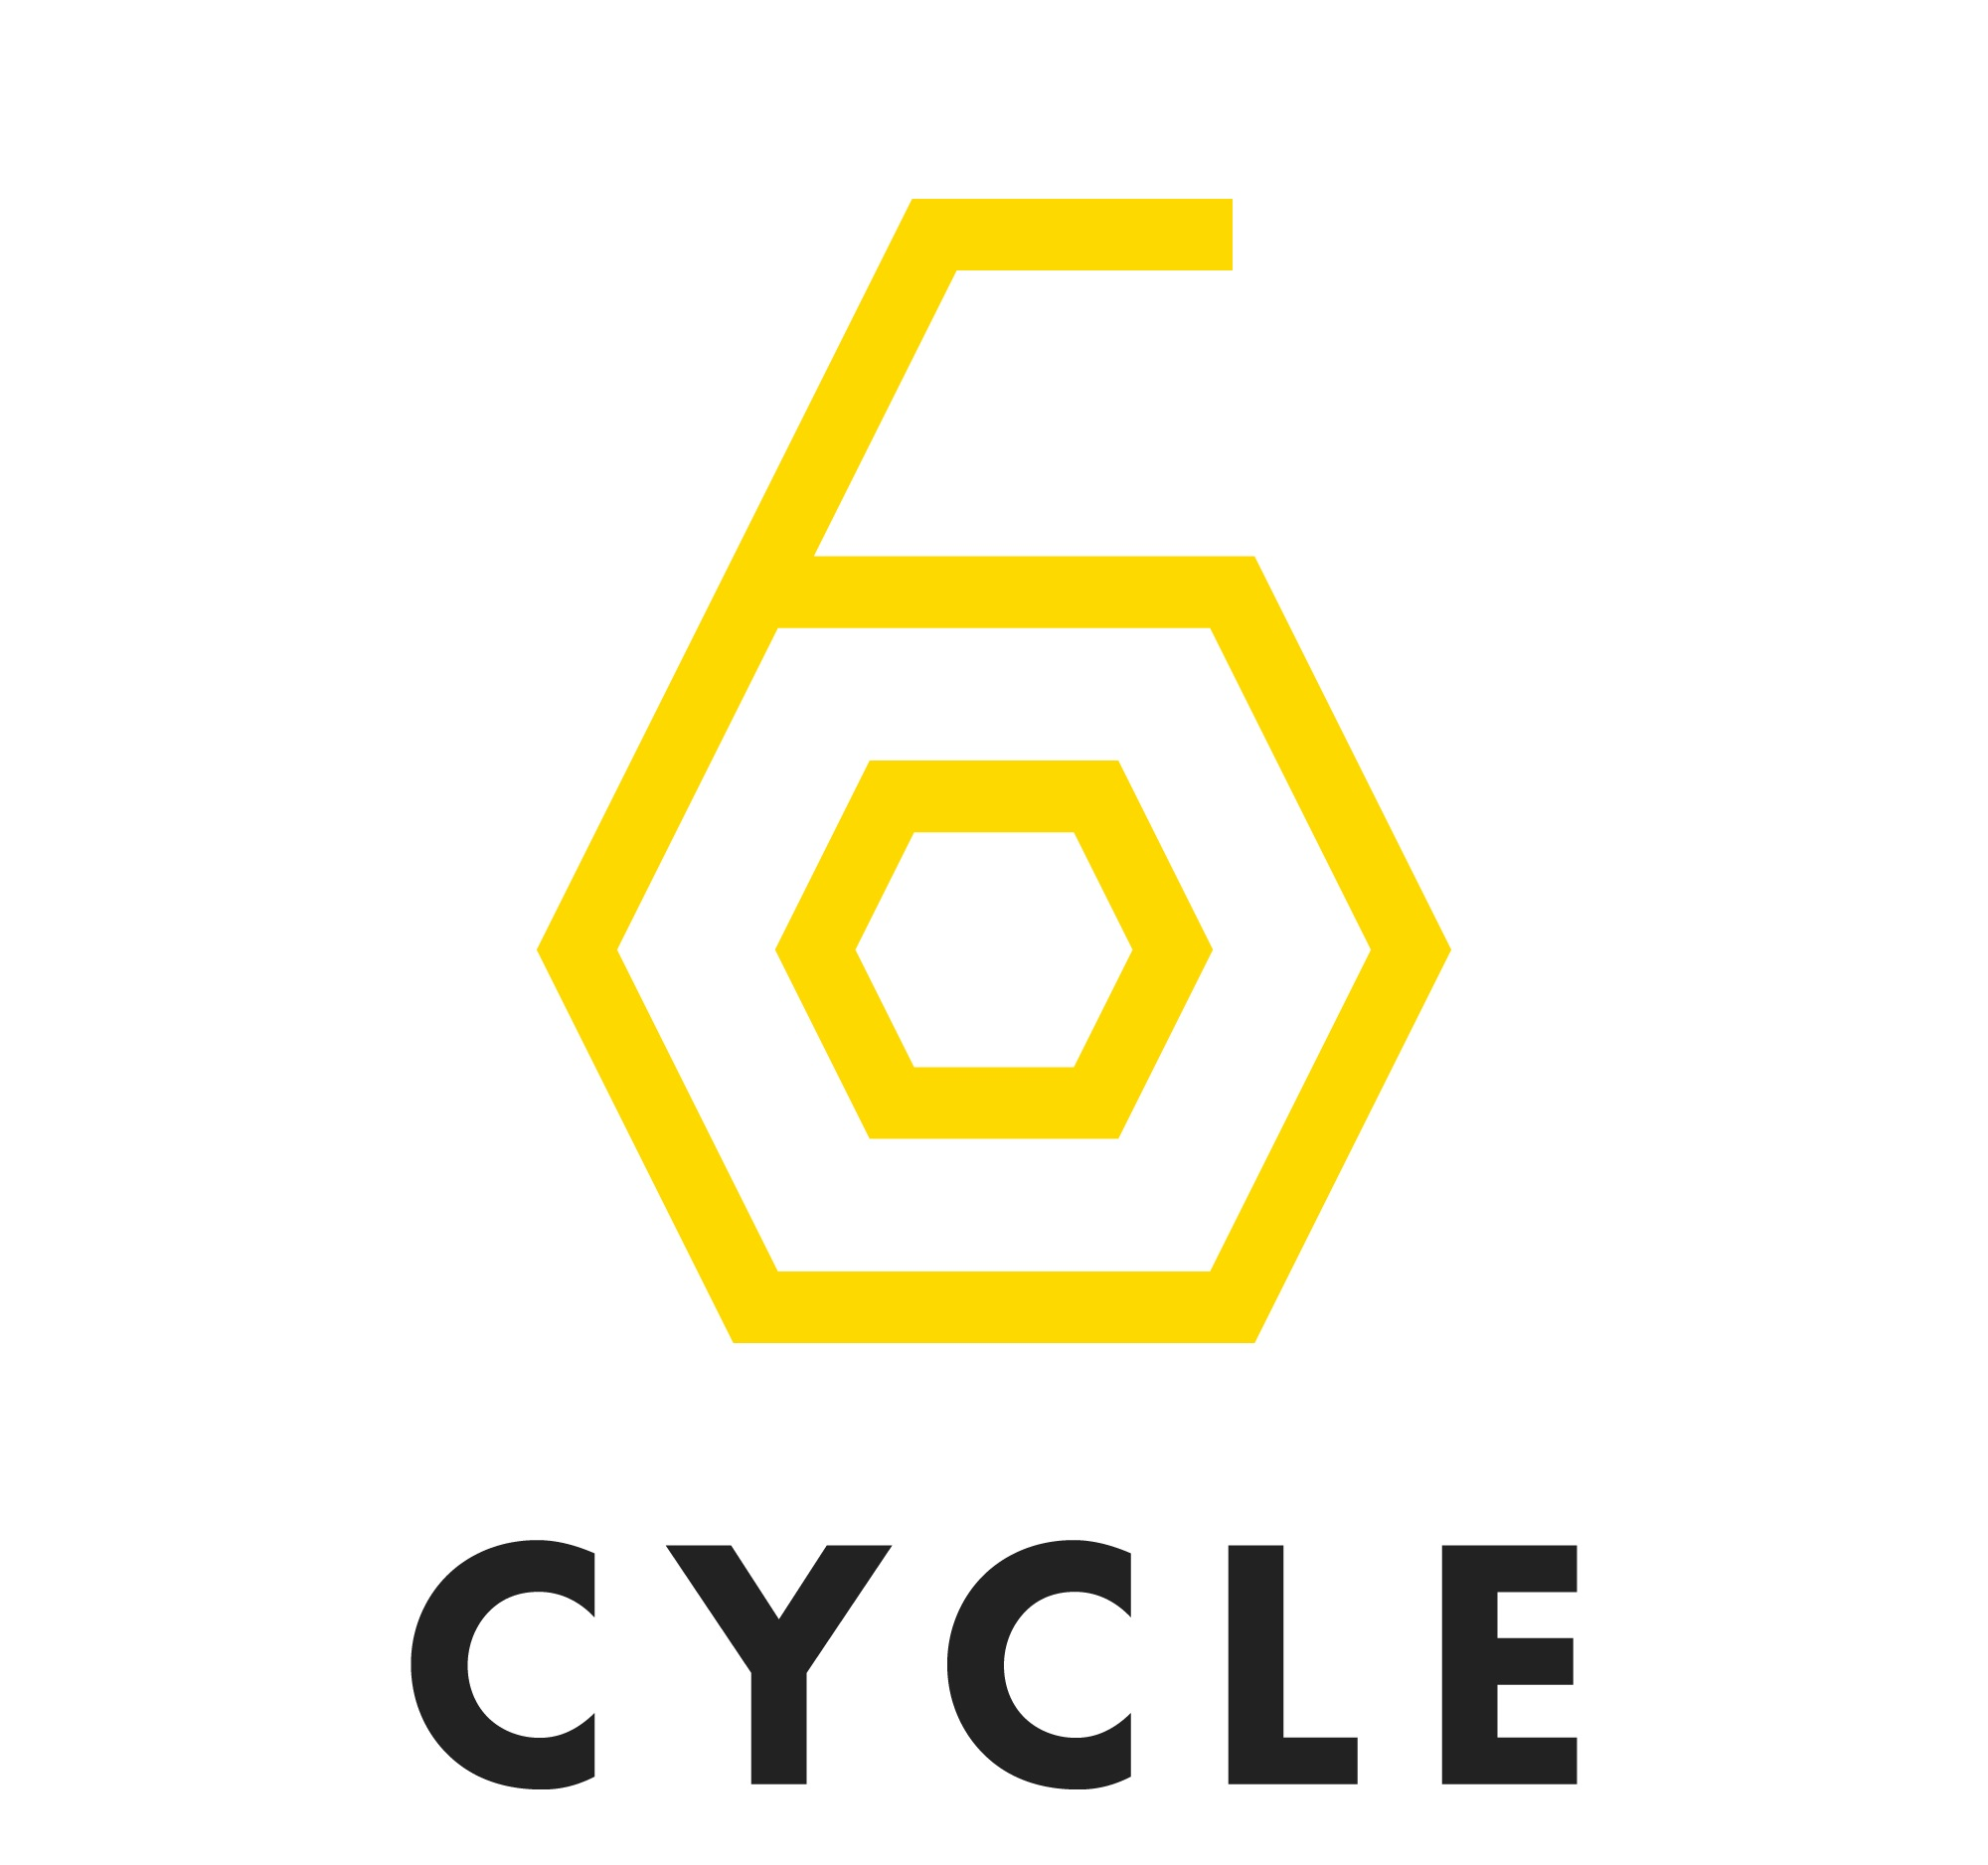 6cycle.logo.two-color.jpg